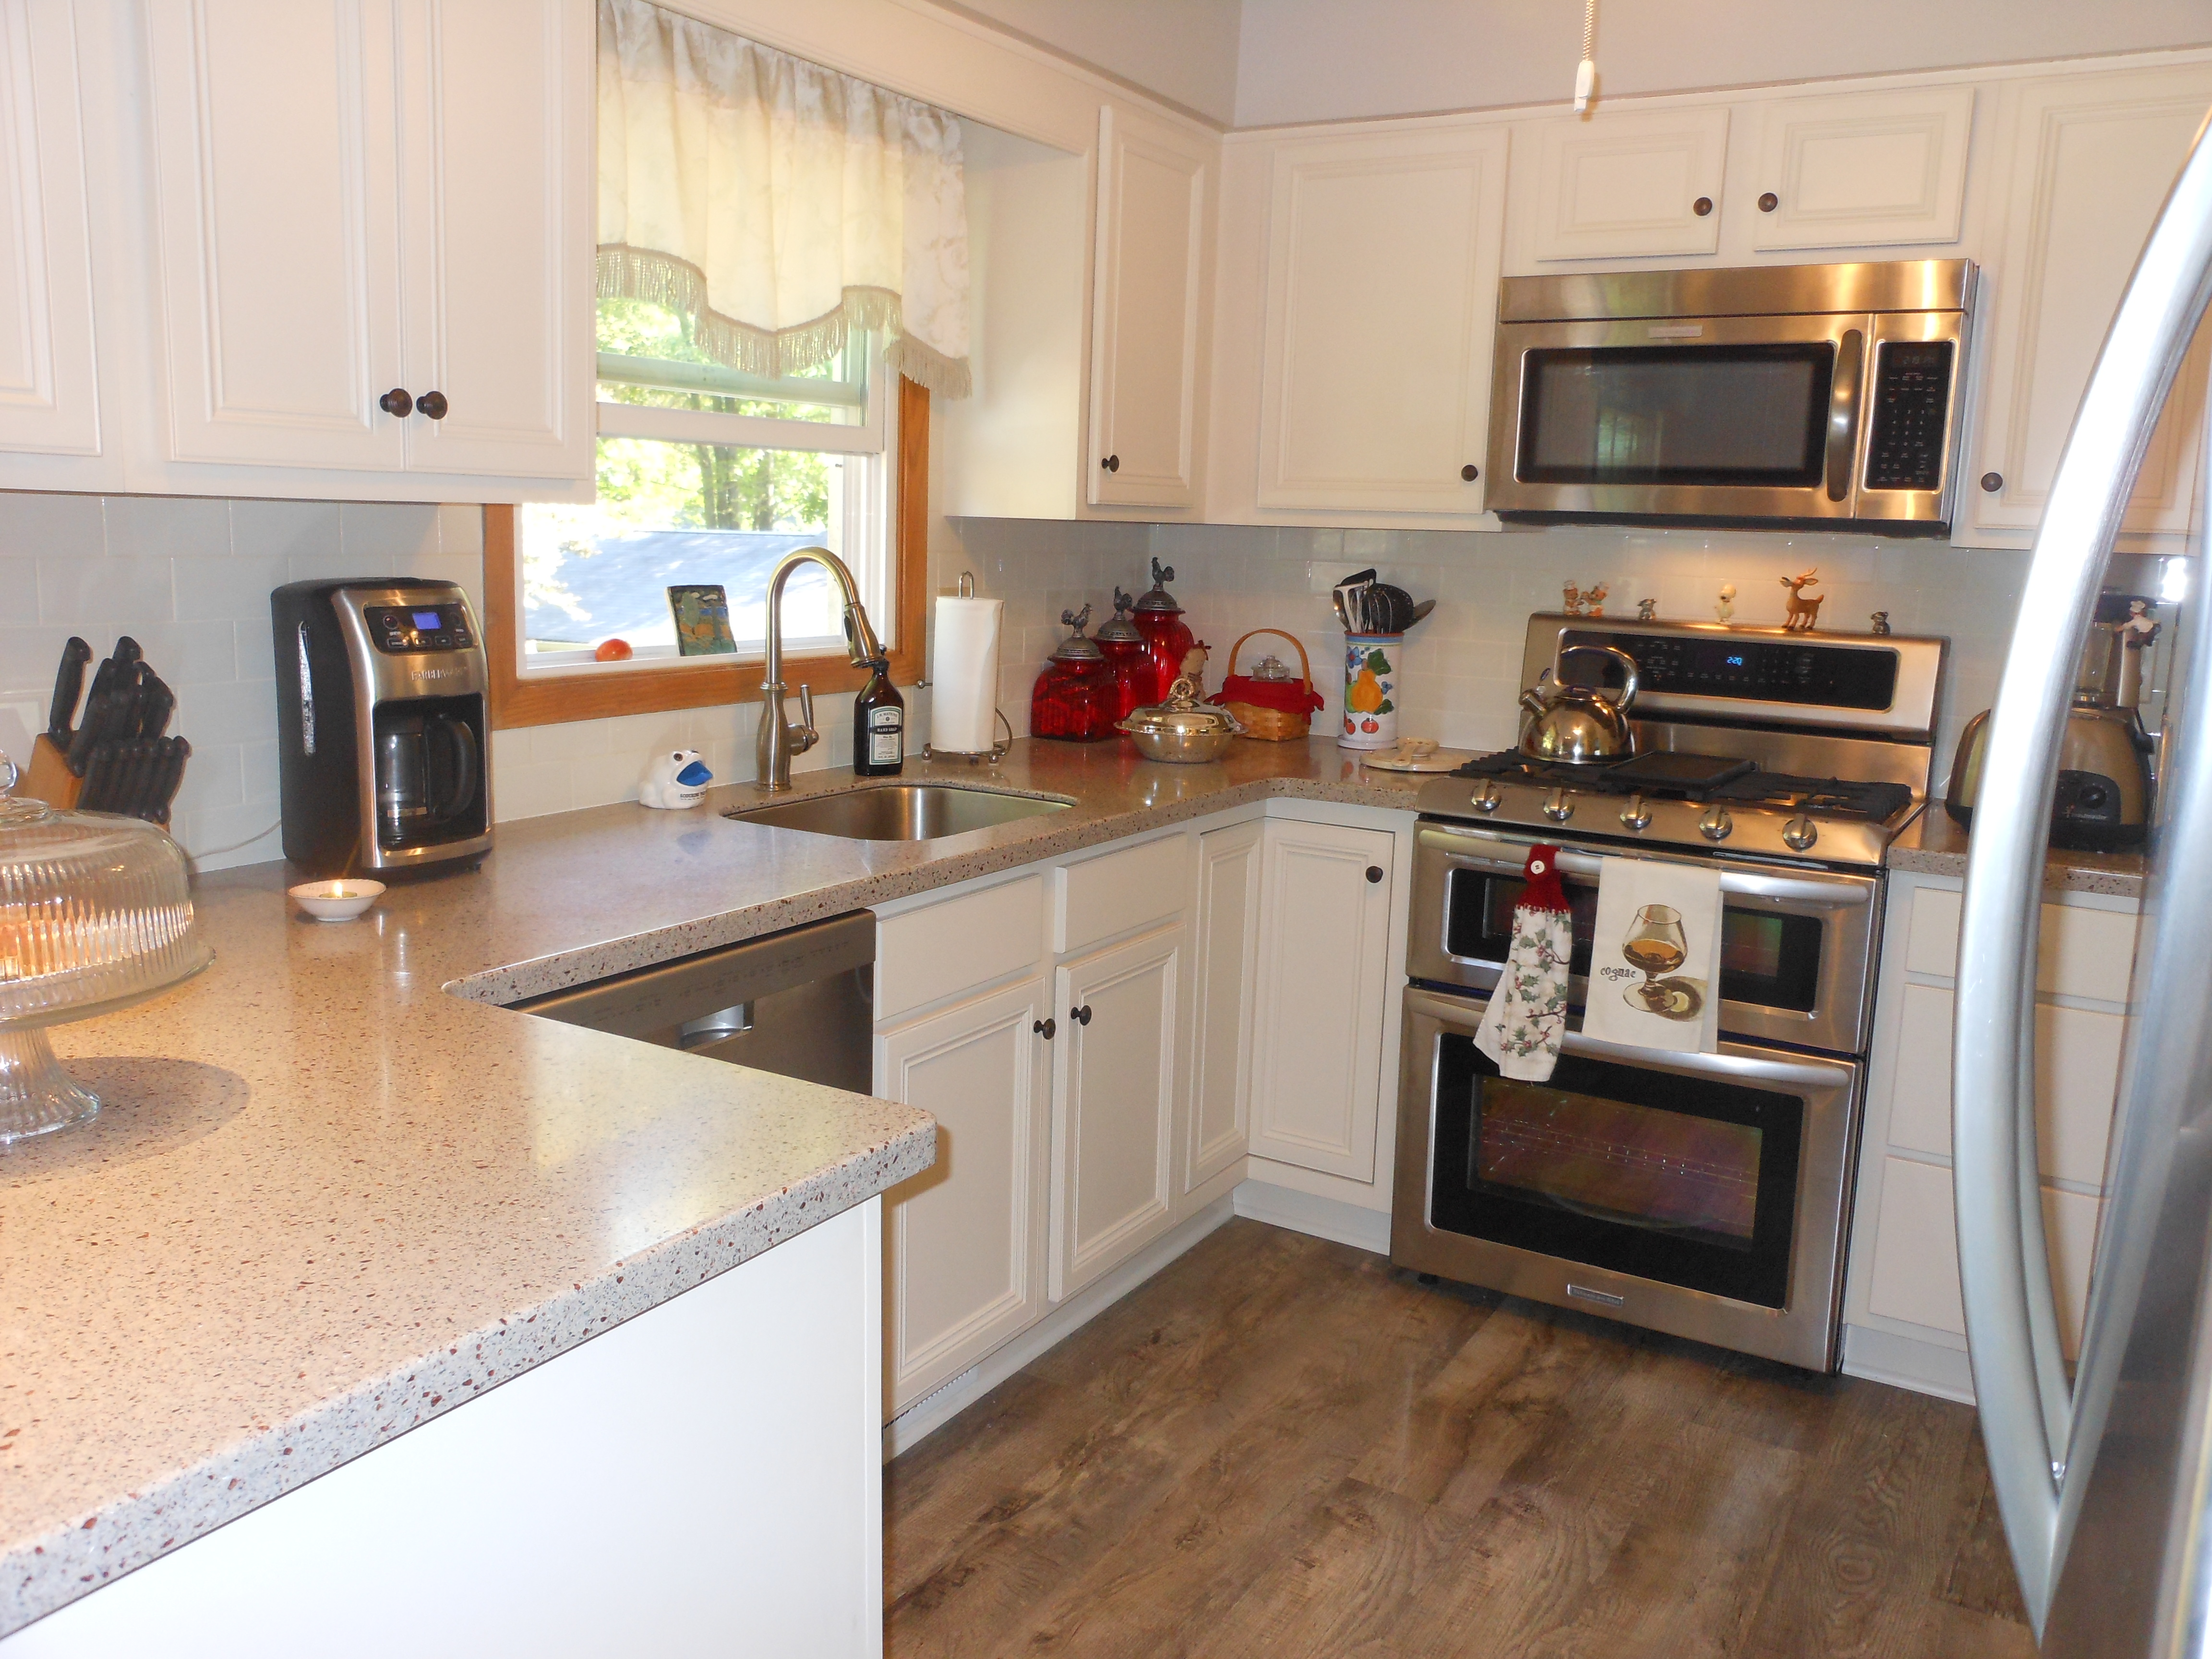 betsy r cabinets2countertops